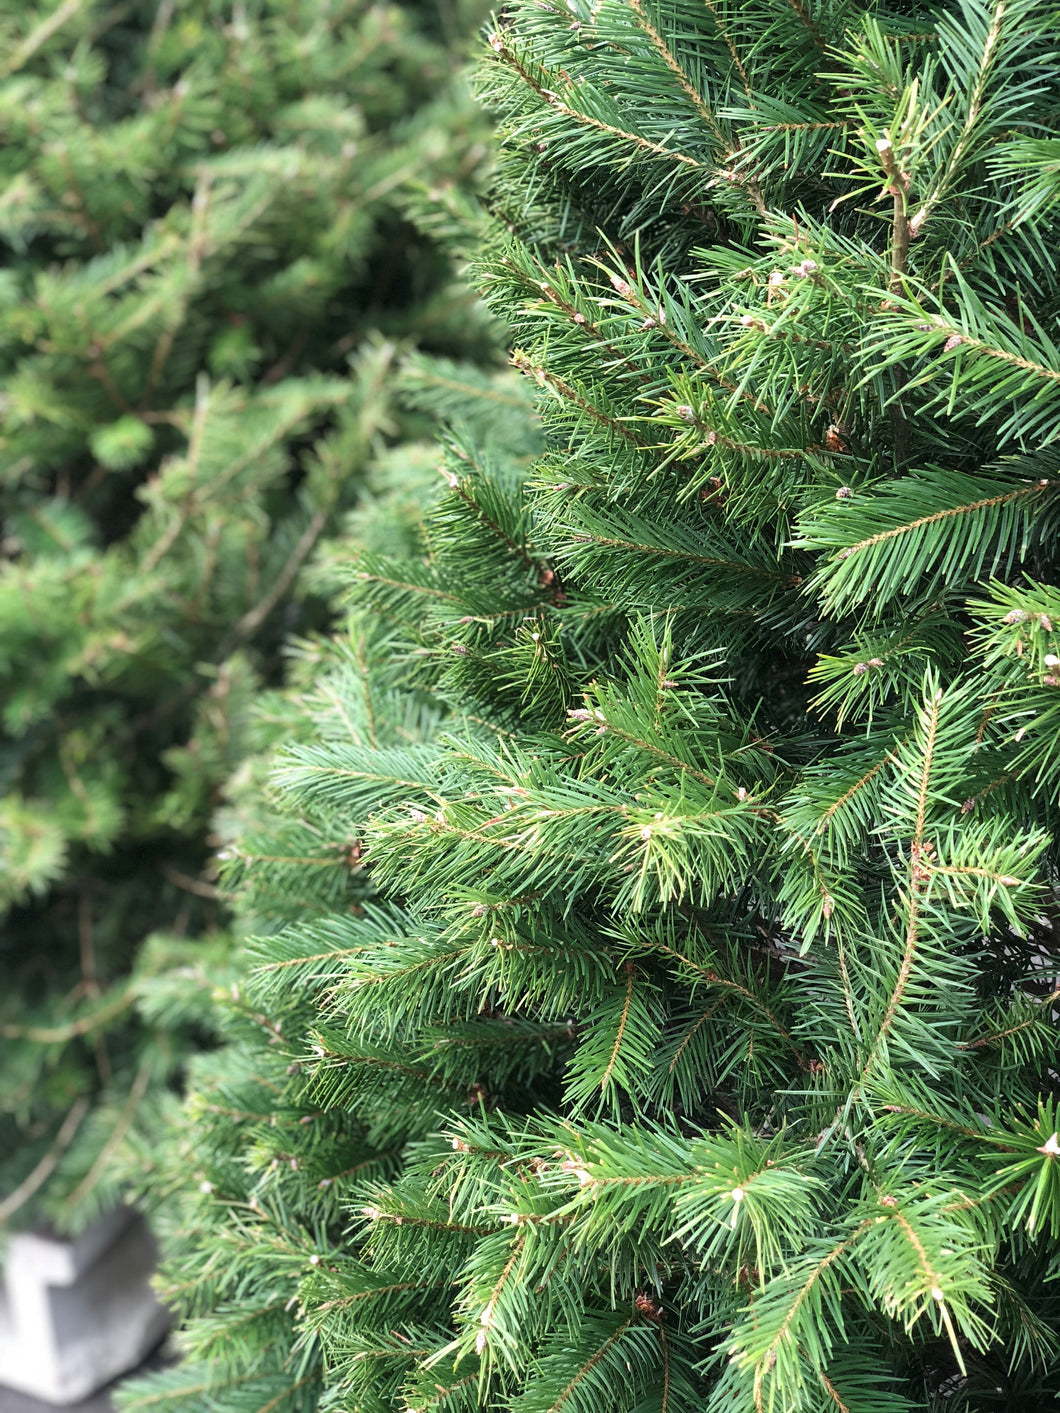 A Douglas Fir Is a Beautiful Christmas tree with soft, shiny green needles.